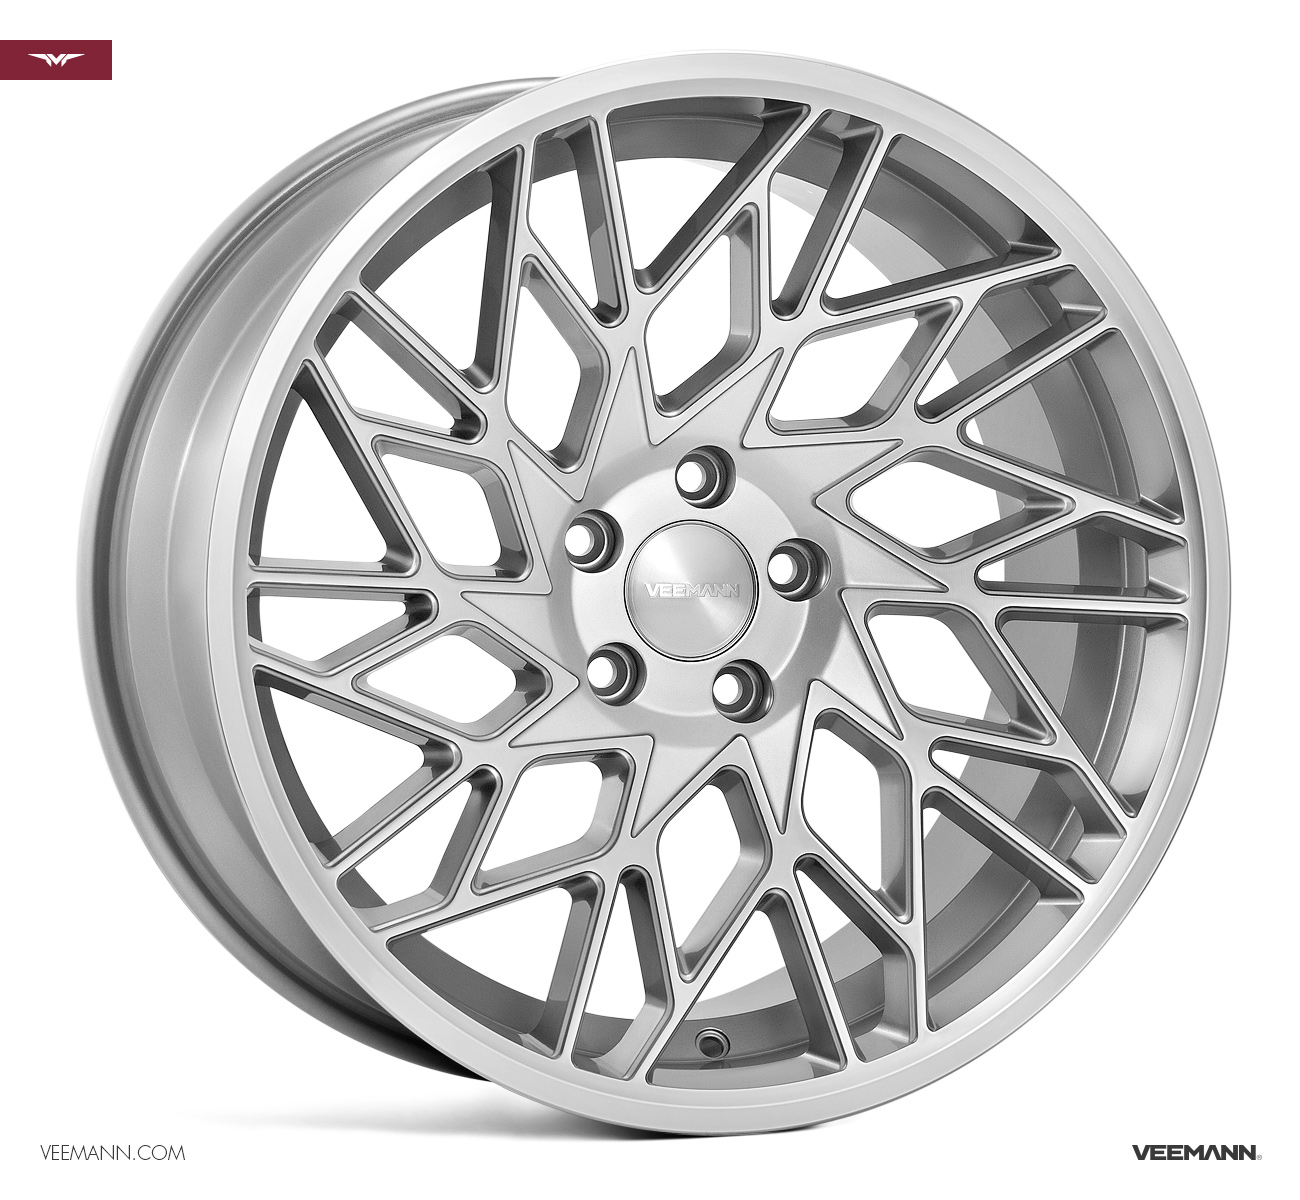 "NEW 19"" VEEMANN V-FS29R ALLOYS IN SILVER POL WITH WIDER 9.5"" REARS"